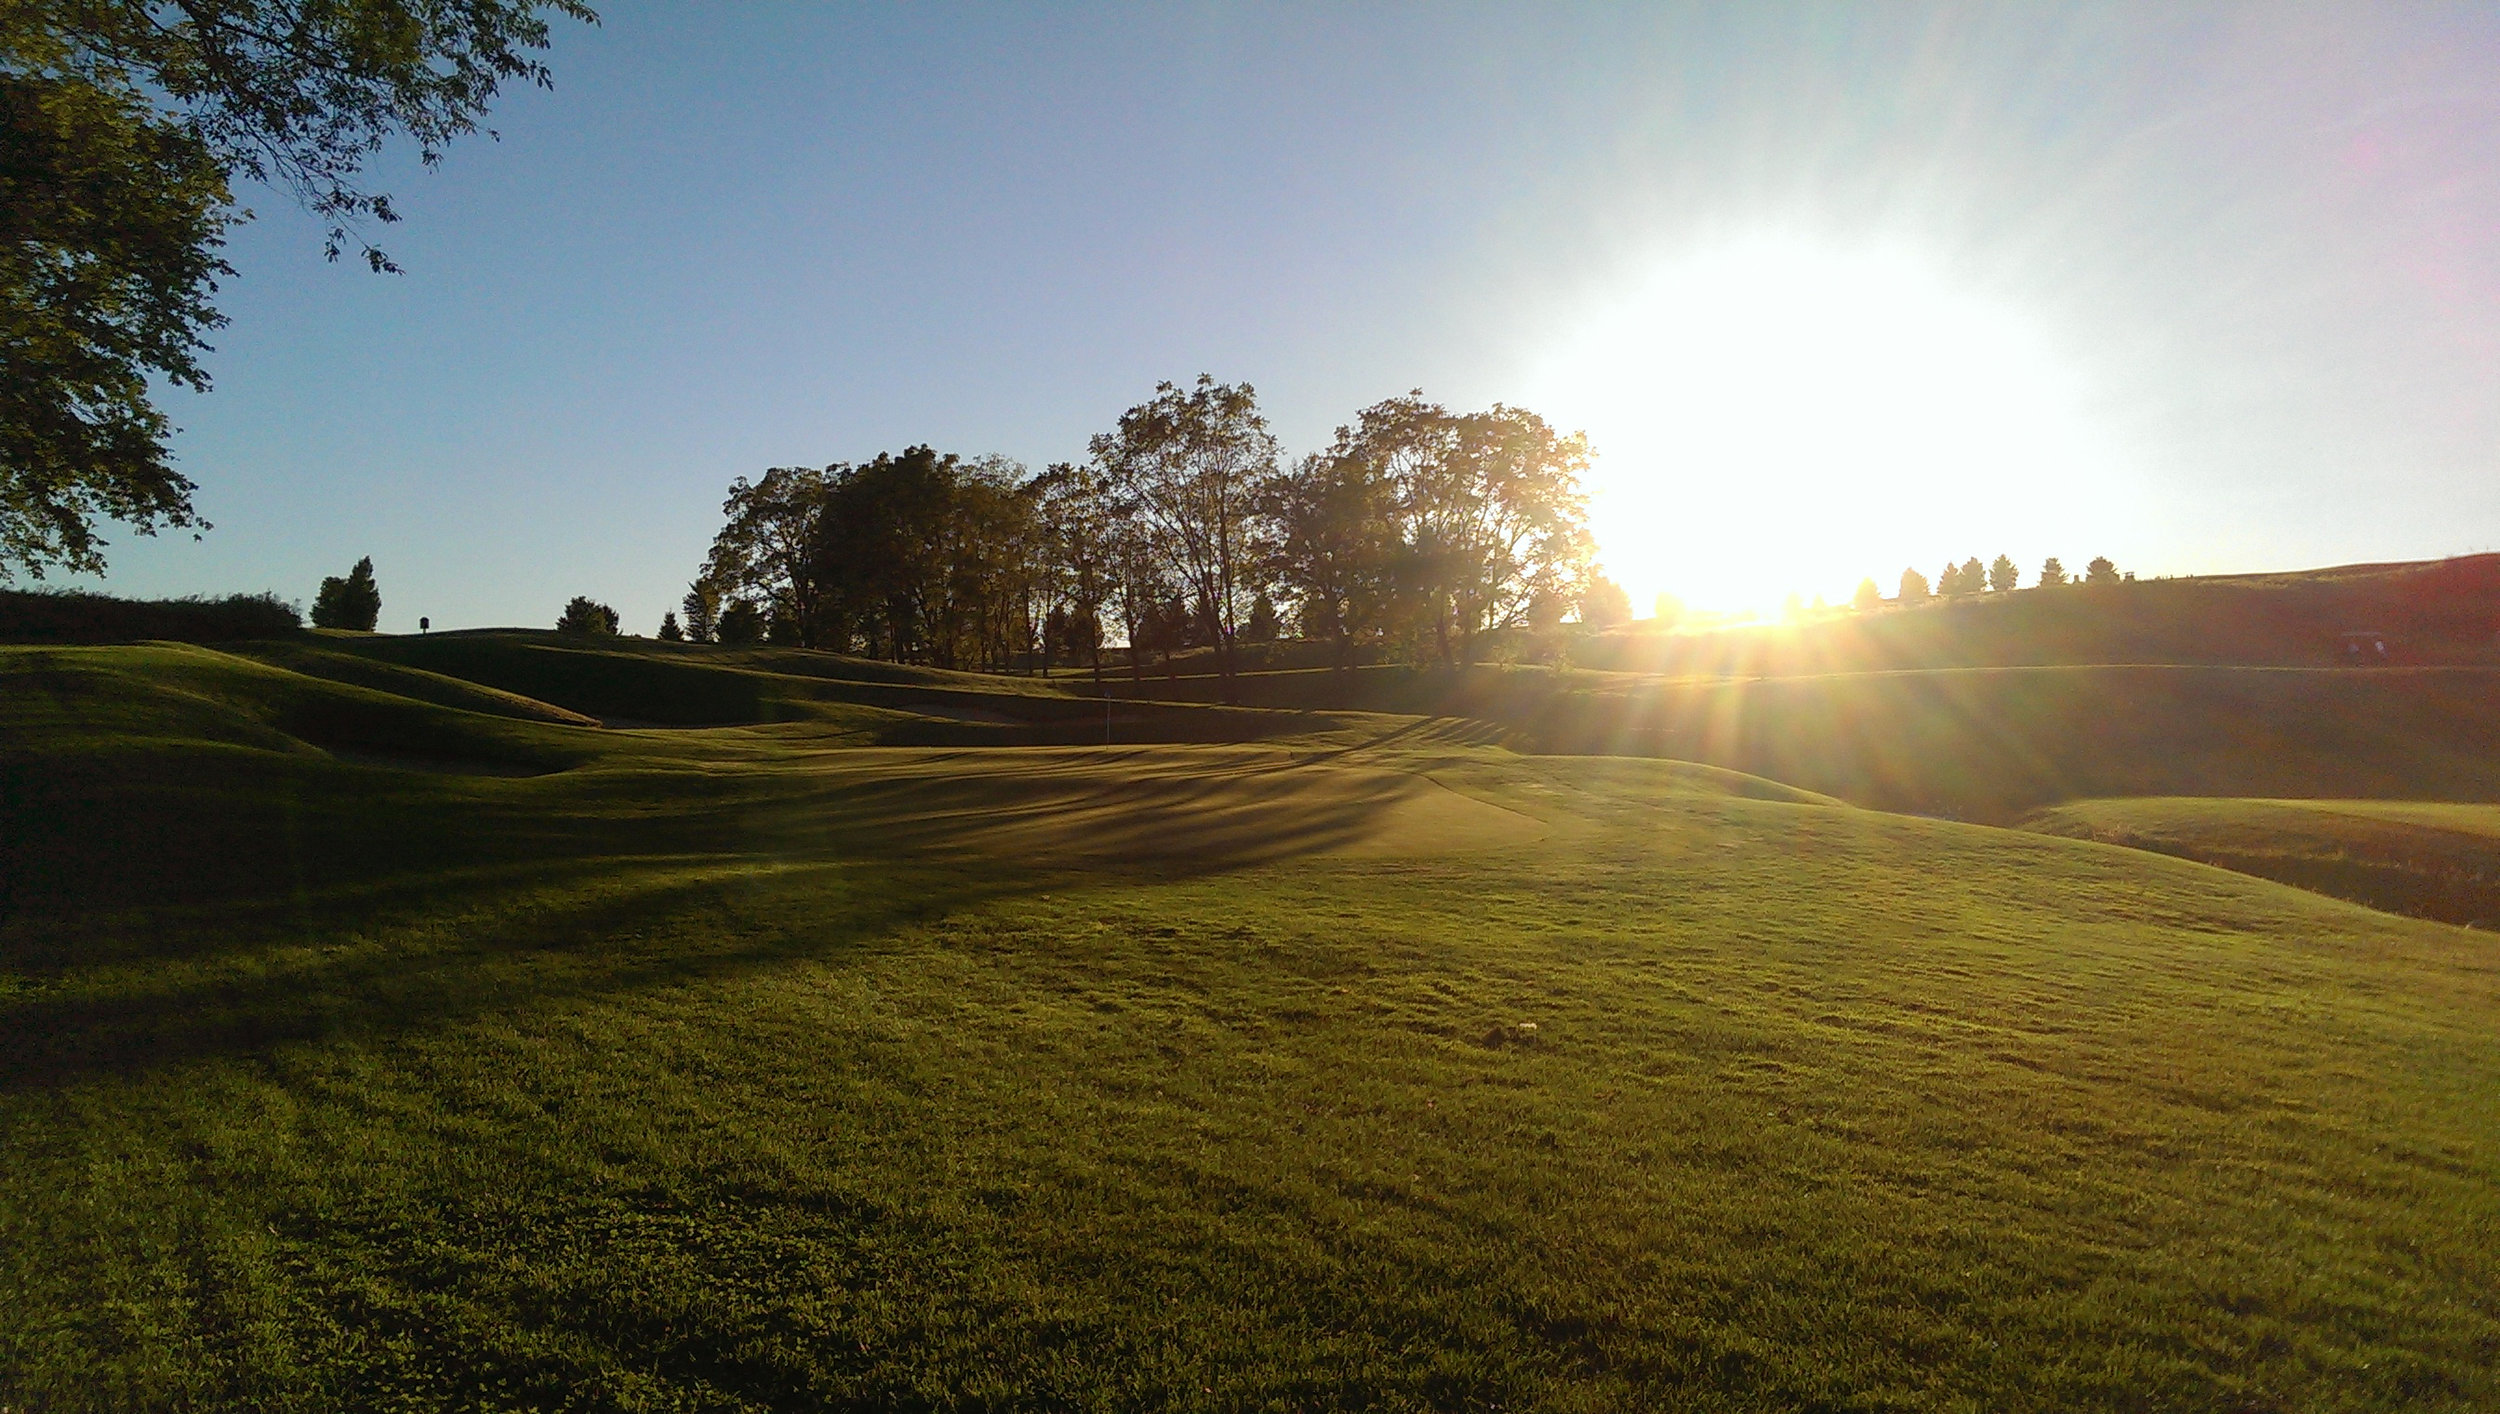 EARLY BIRD GOLF SPECIAL - Available Until 8:00 AMMonday-Thursday: $45Friday: $55Click here to reserve a tee time!